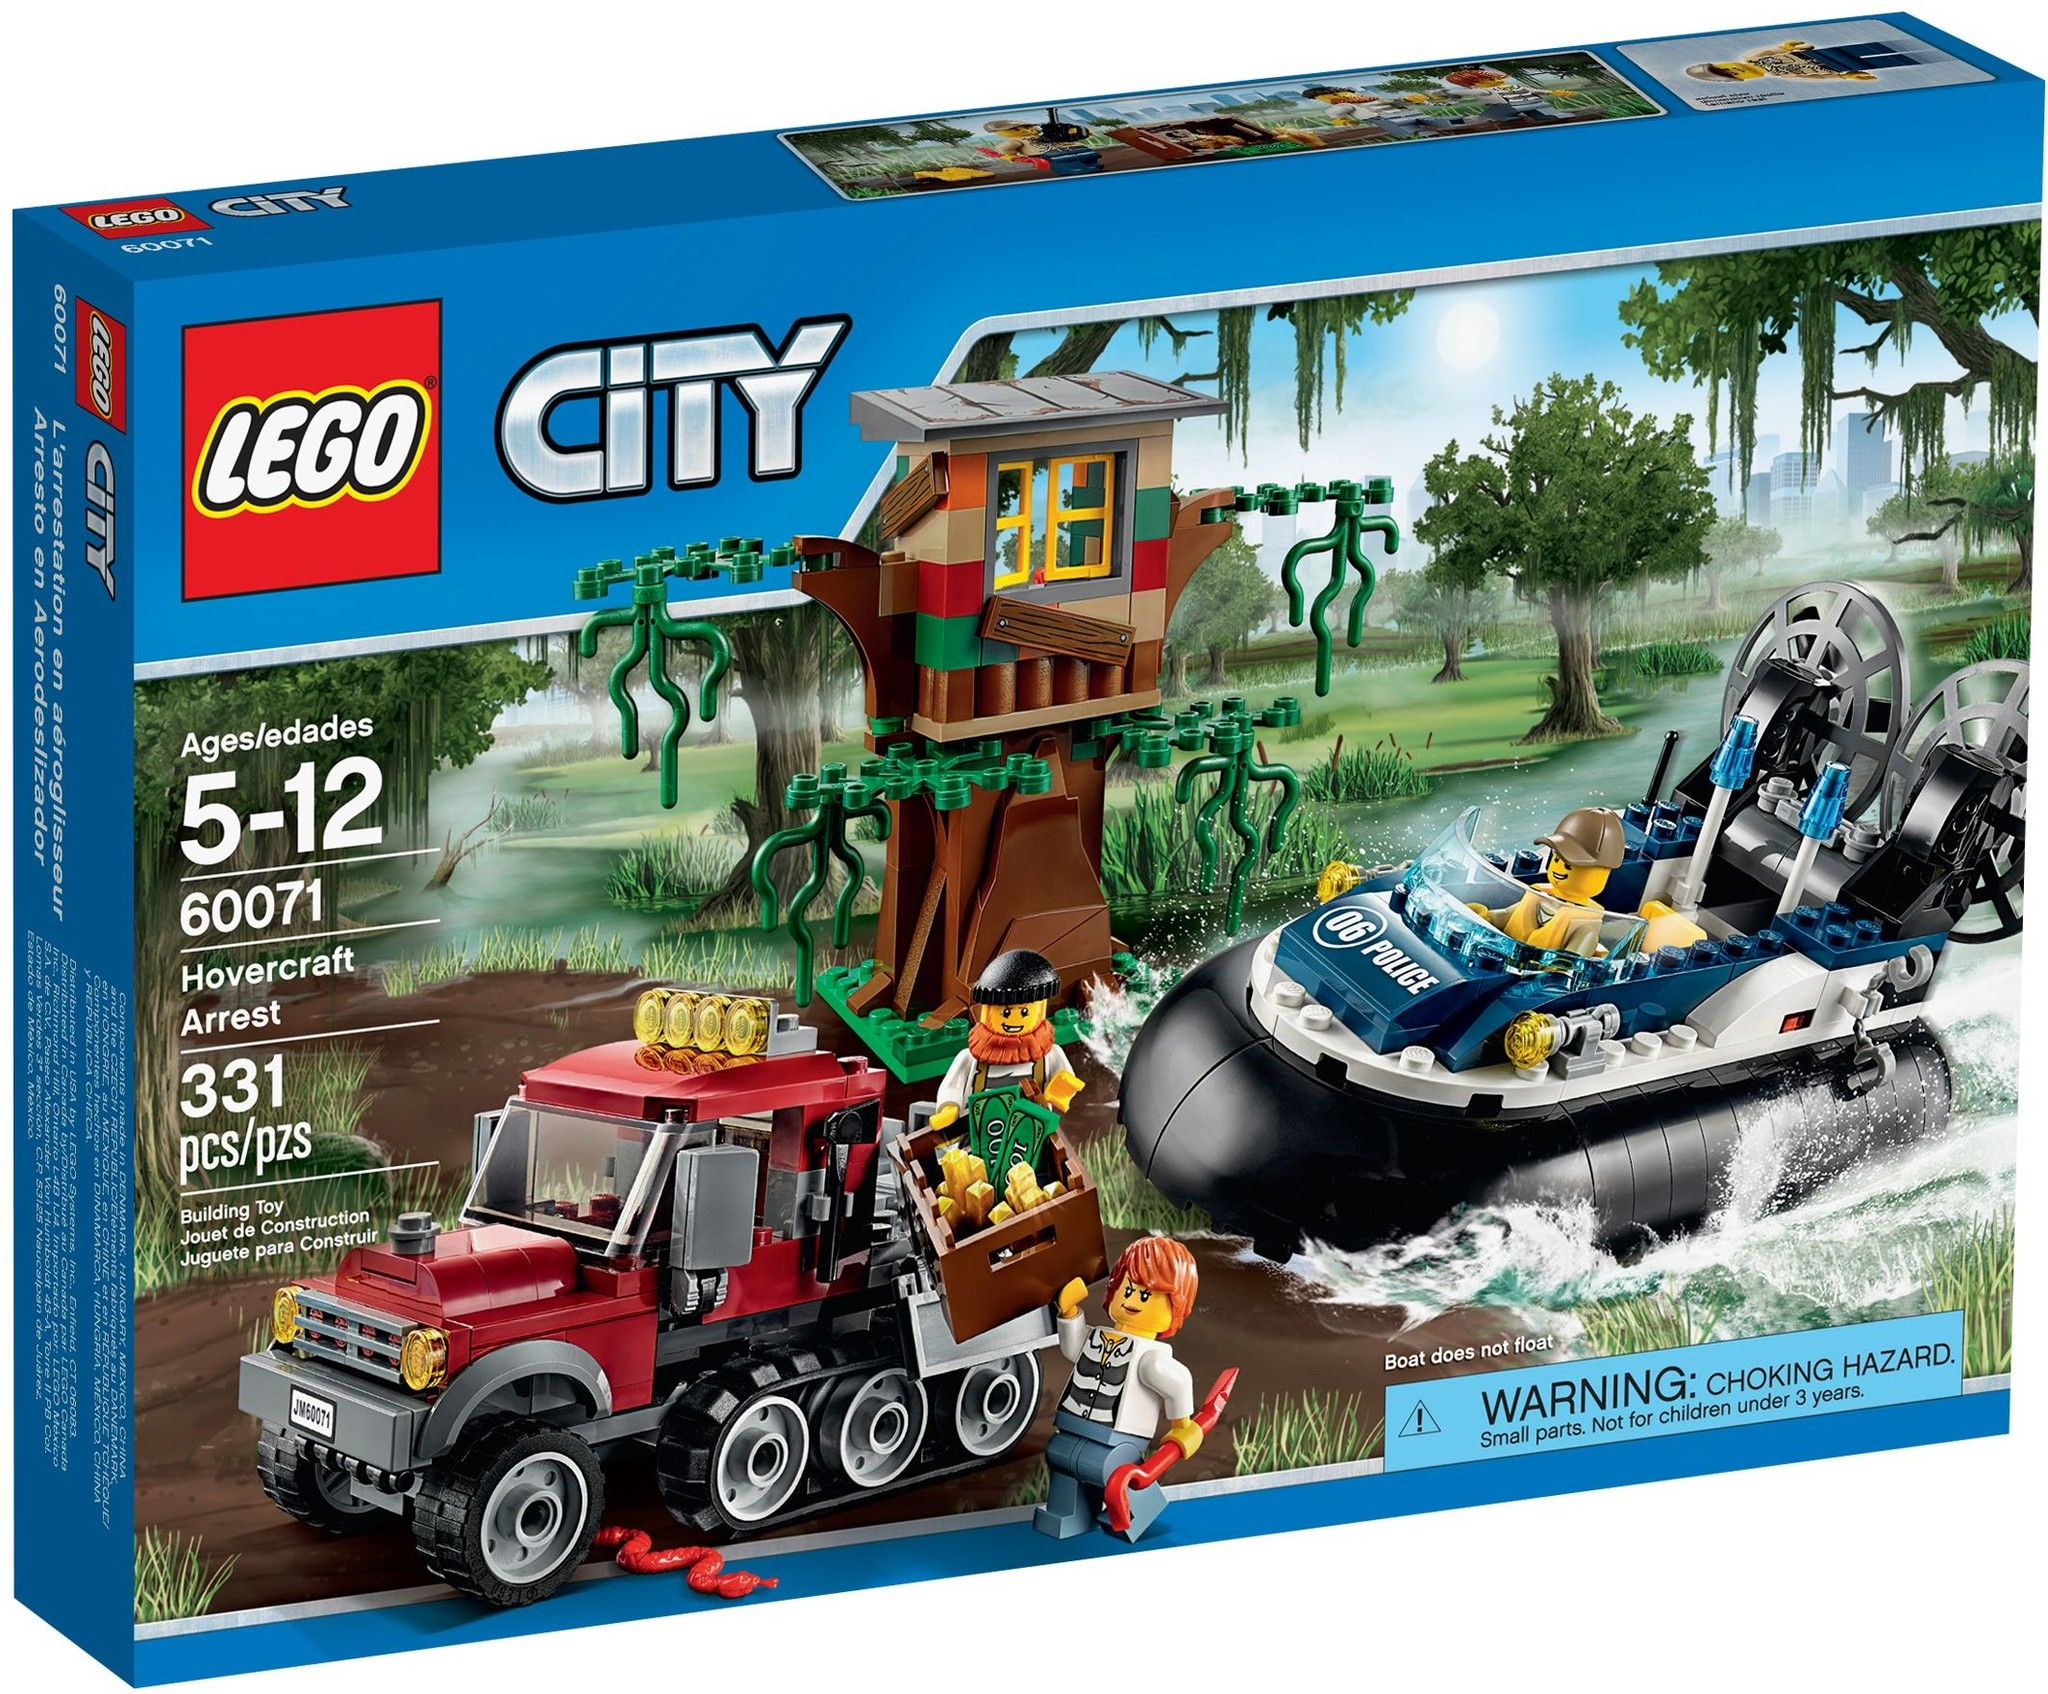 LEGO 60071 - City - Hovercraft Arrest